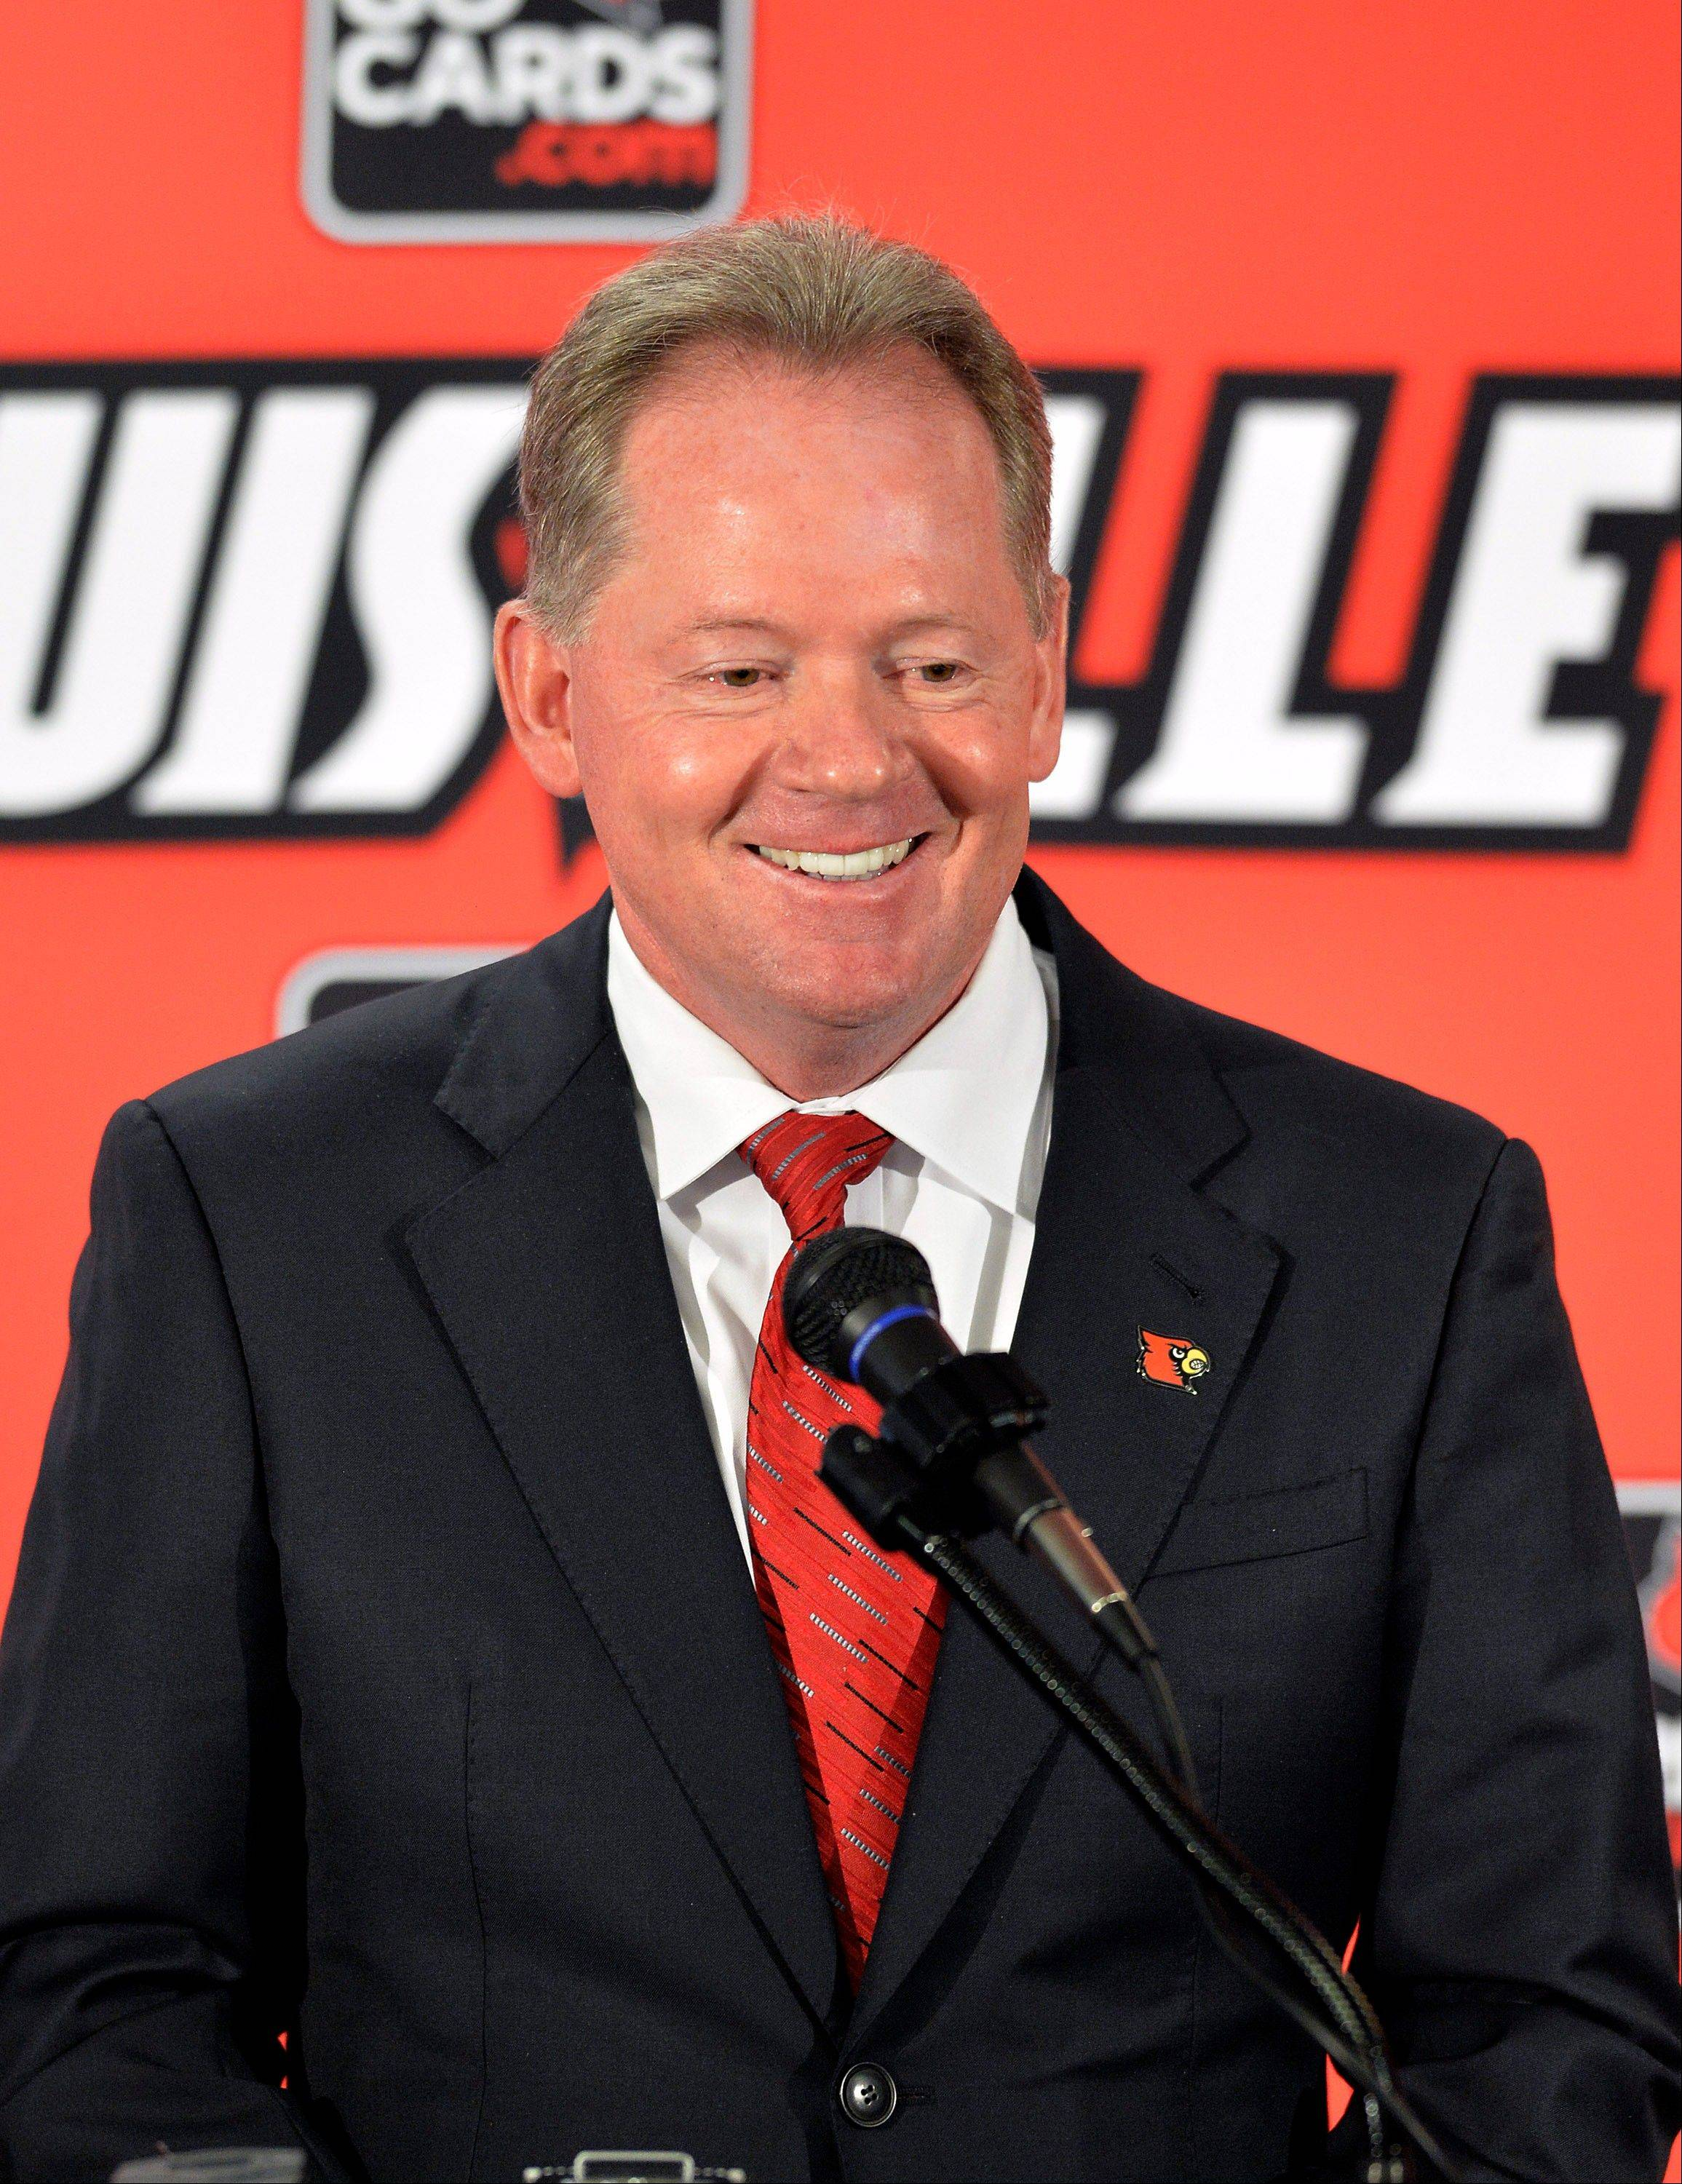 New Louisville head football coach Bobby Petrino address reporters following the announcement of his hiring Thursday at Papa John's Cardinal Stadium in Louisville, Ky.